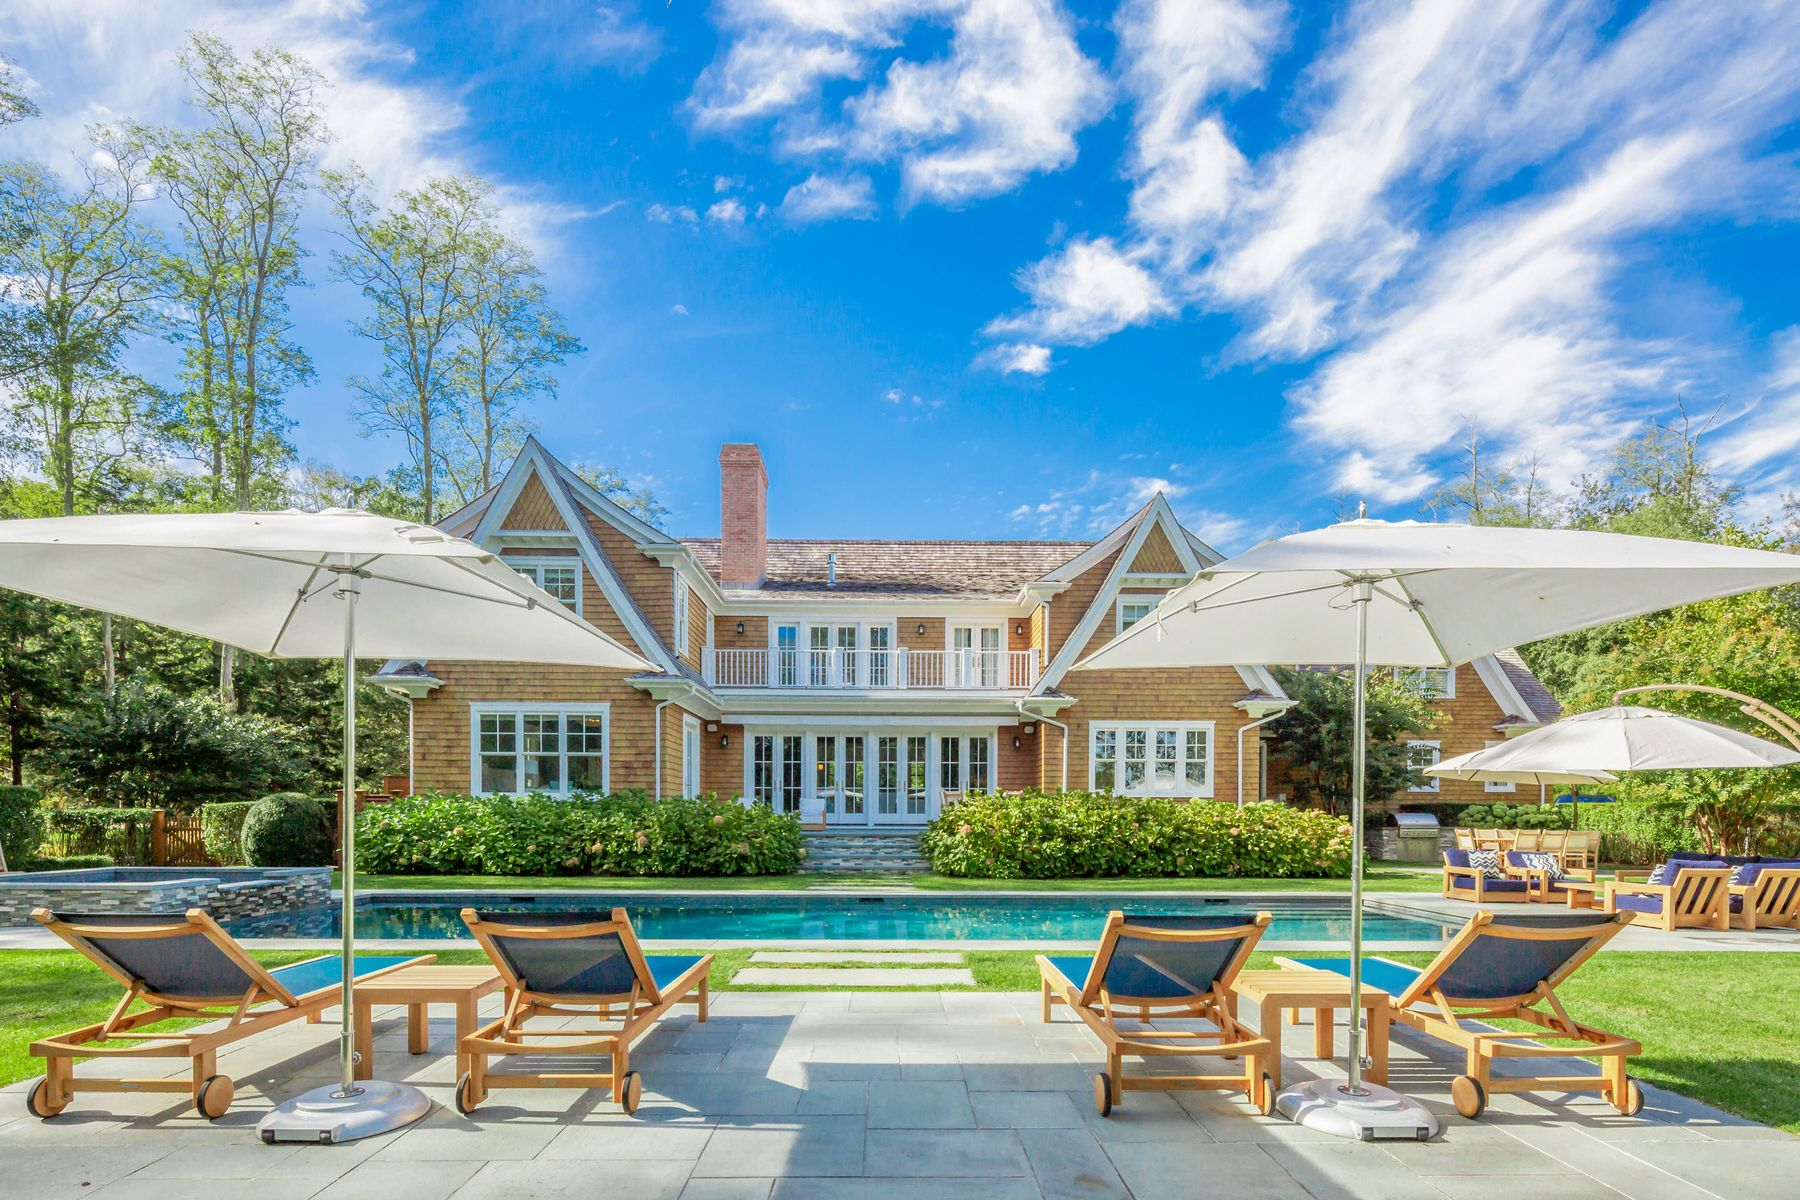 Single Family Home for Active at Premier North Haven Estate 14 Fairlea Court Sag Harbor, New York 11963 United States